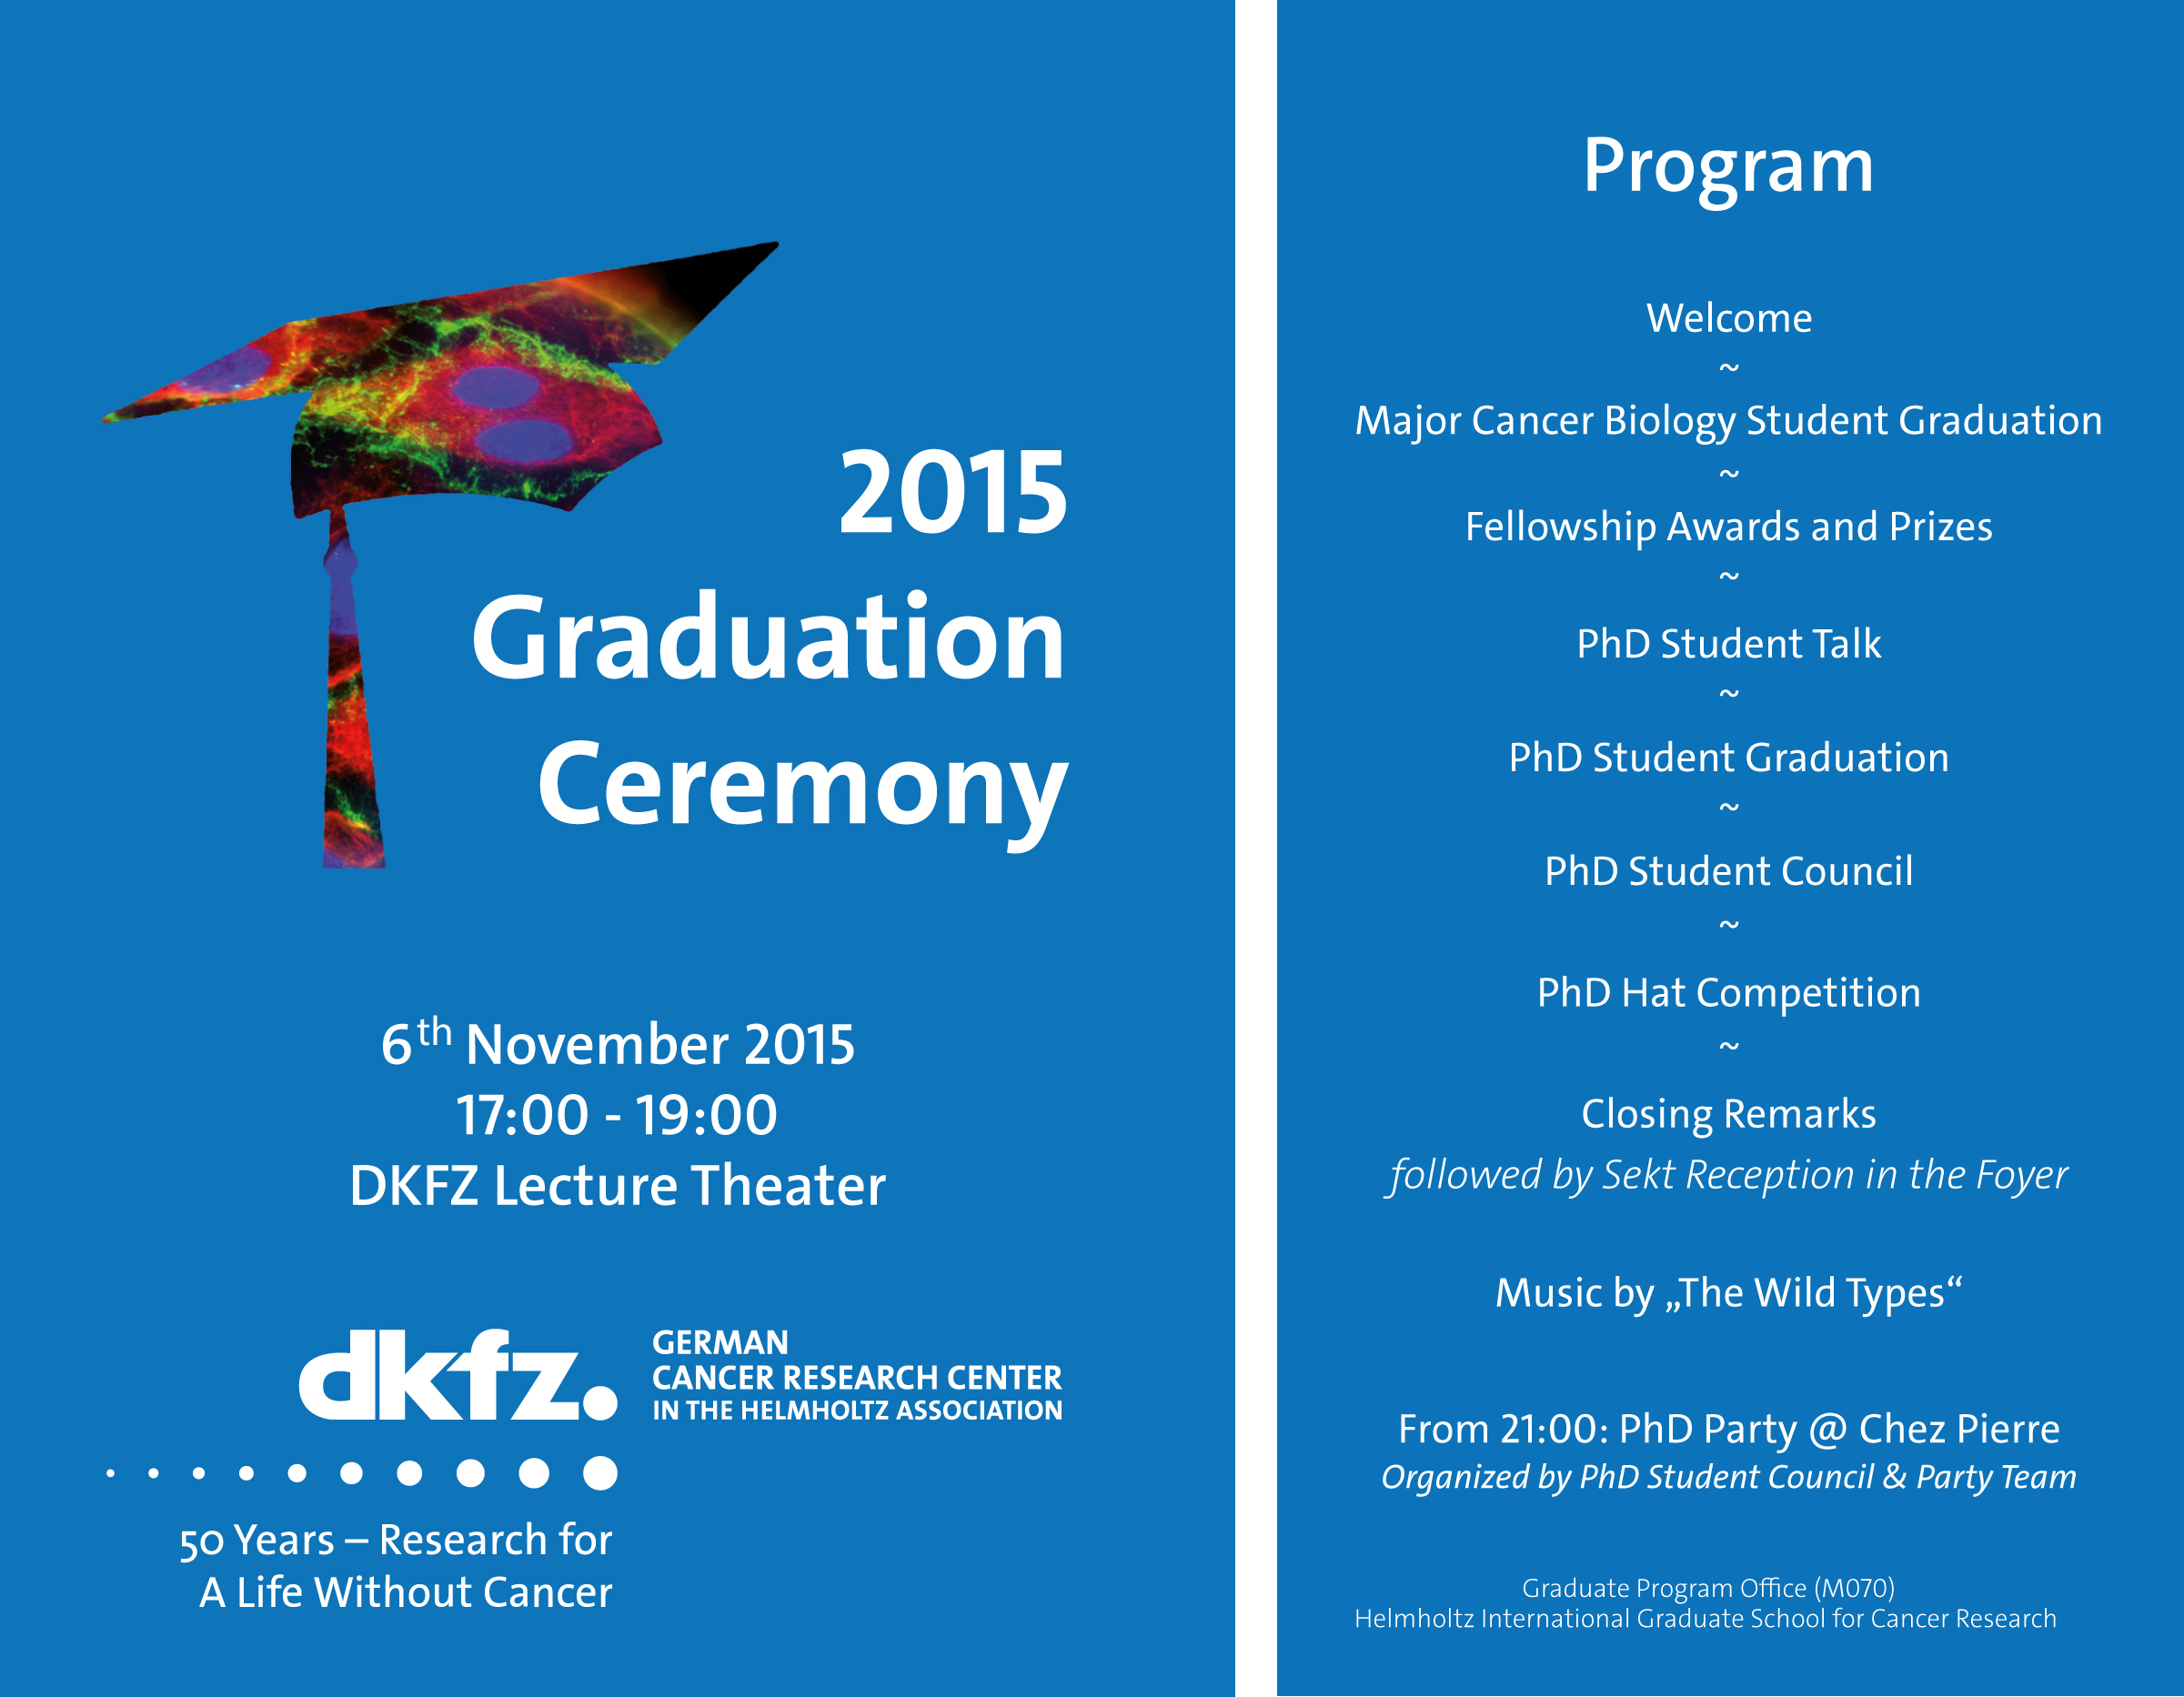 Graduation Ceremony Reception: Deutsches Krebsforschungszentrum